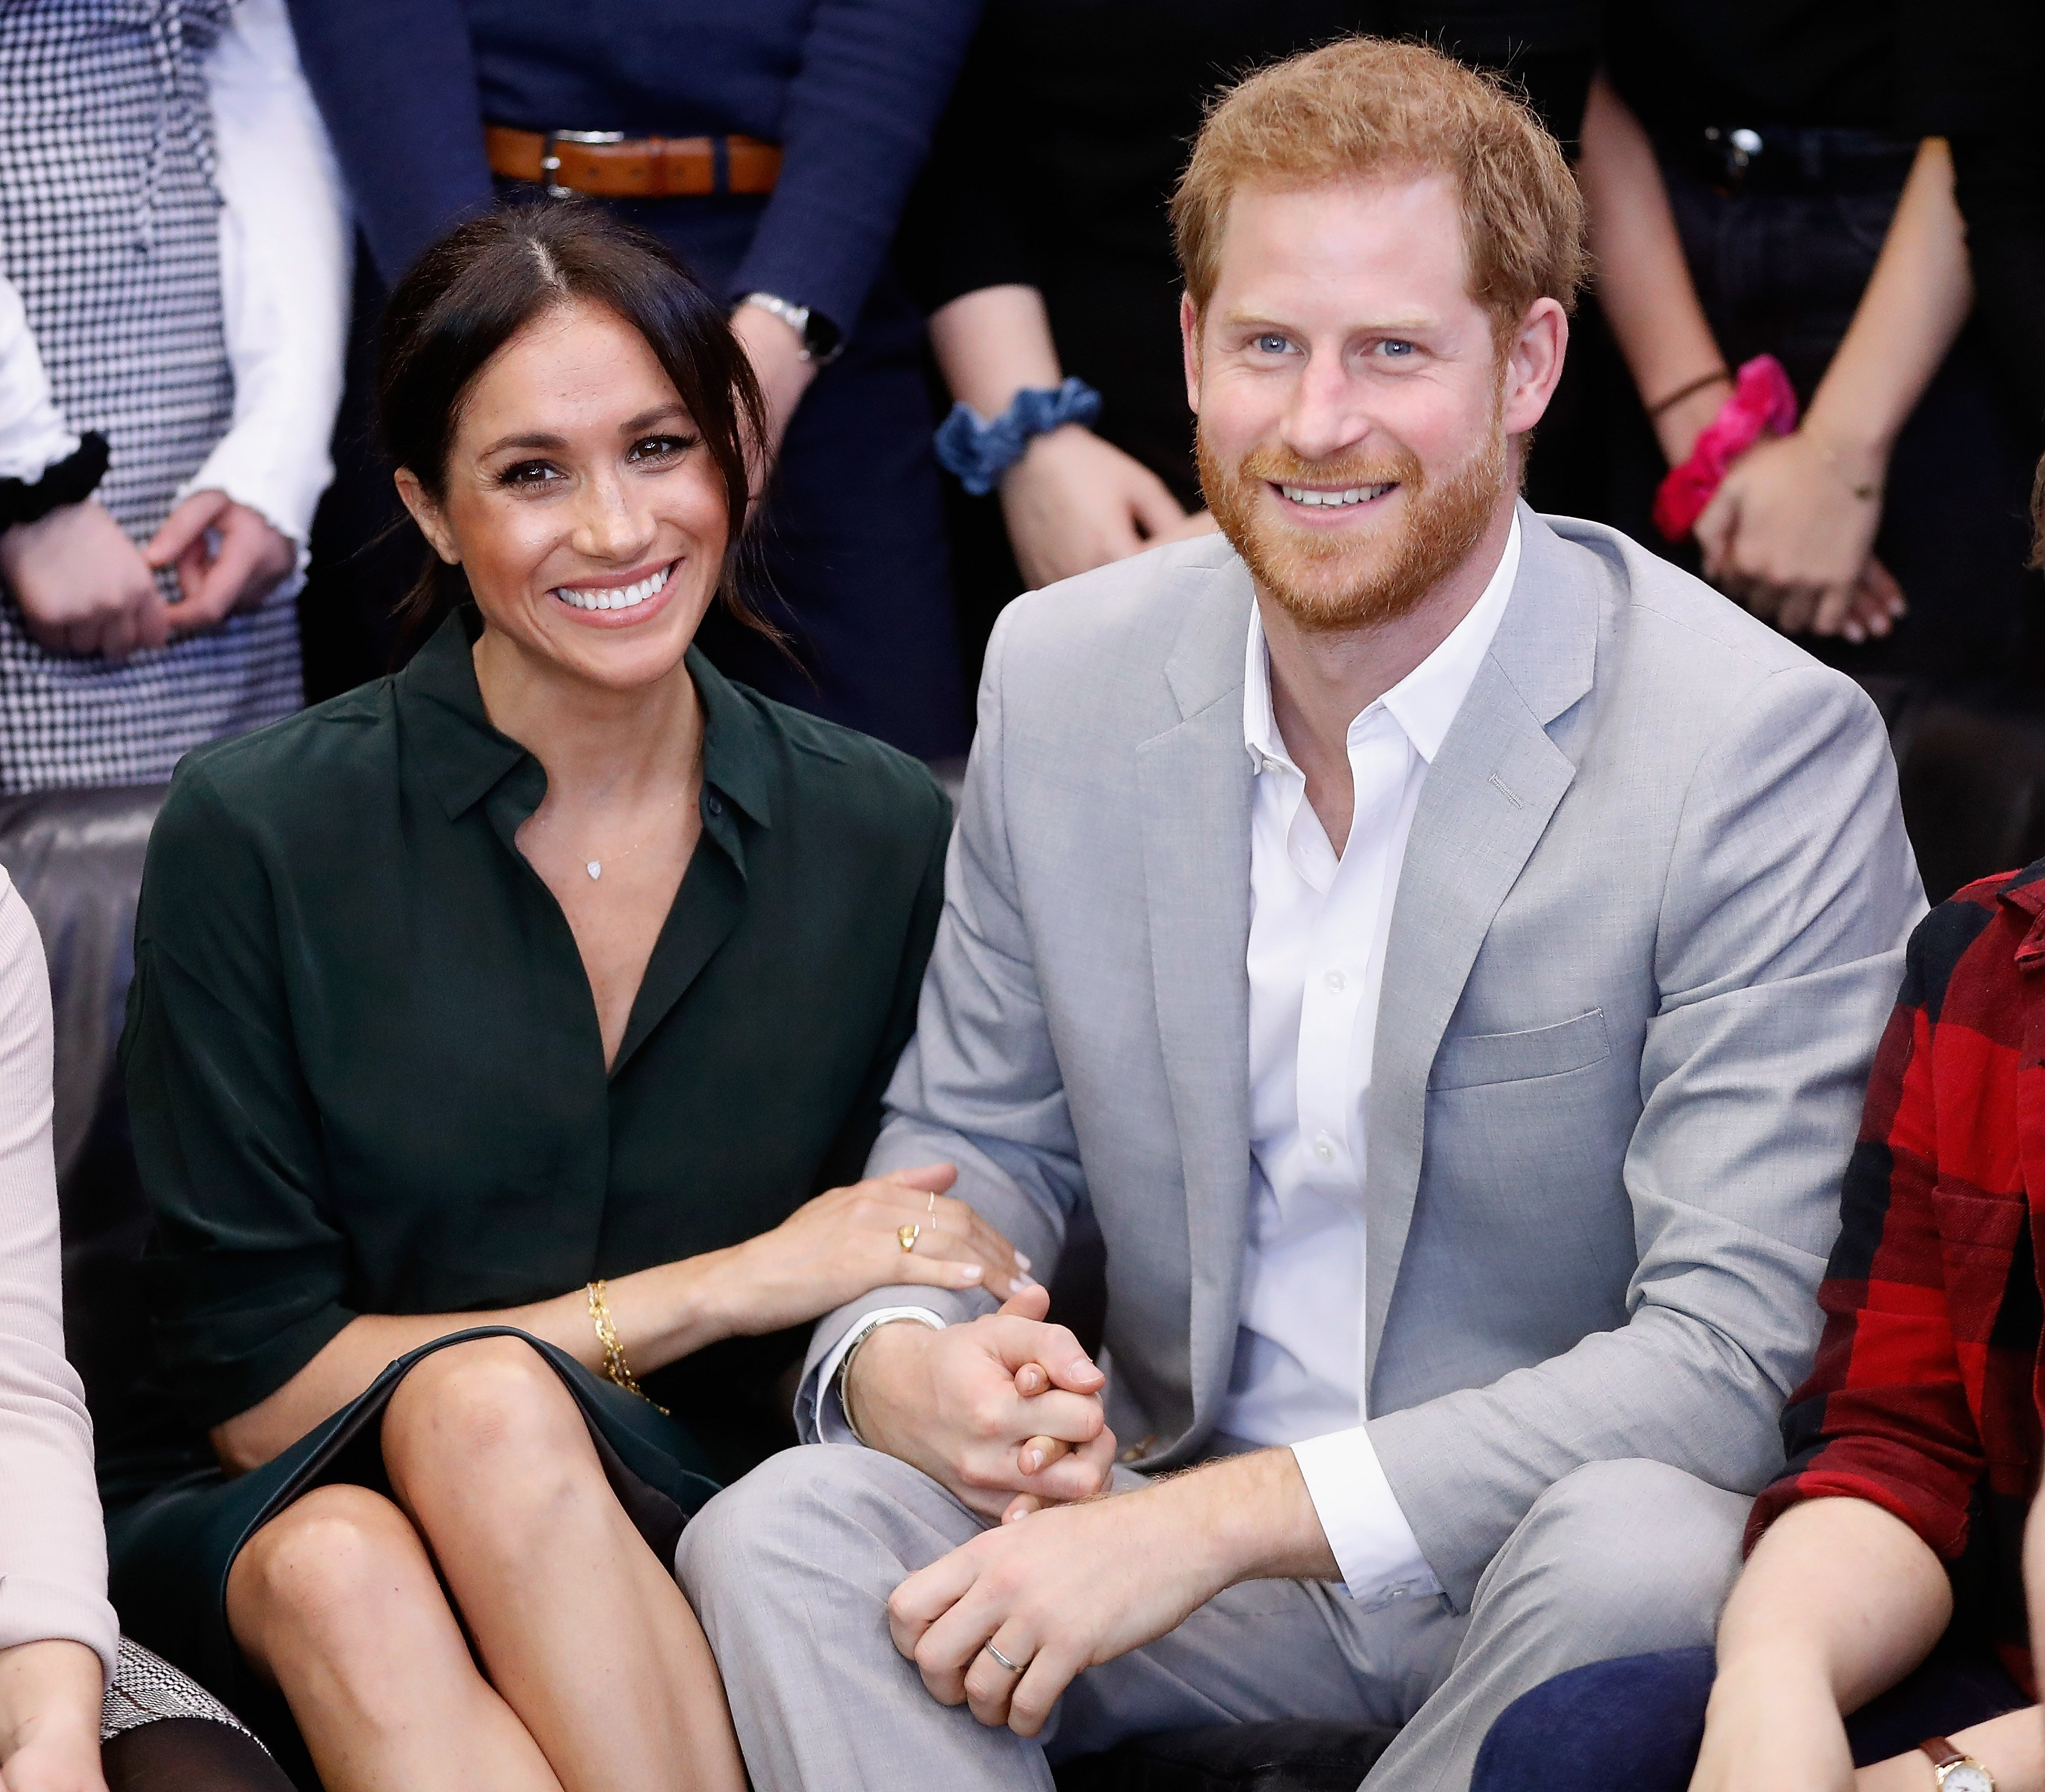 Prince Harry and Meghan Markle during their official visit to the Joff Youth Centre in Peacehaven, Sussex on October 3, 2018, in Peacehaven, United Kingdom. | Source: Getty Images.